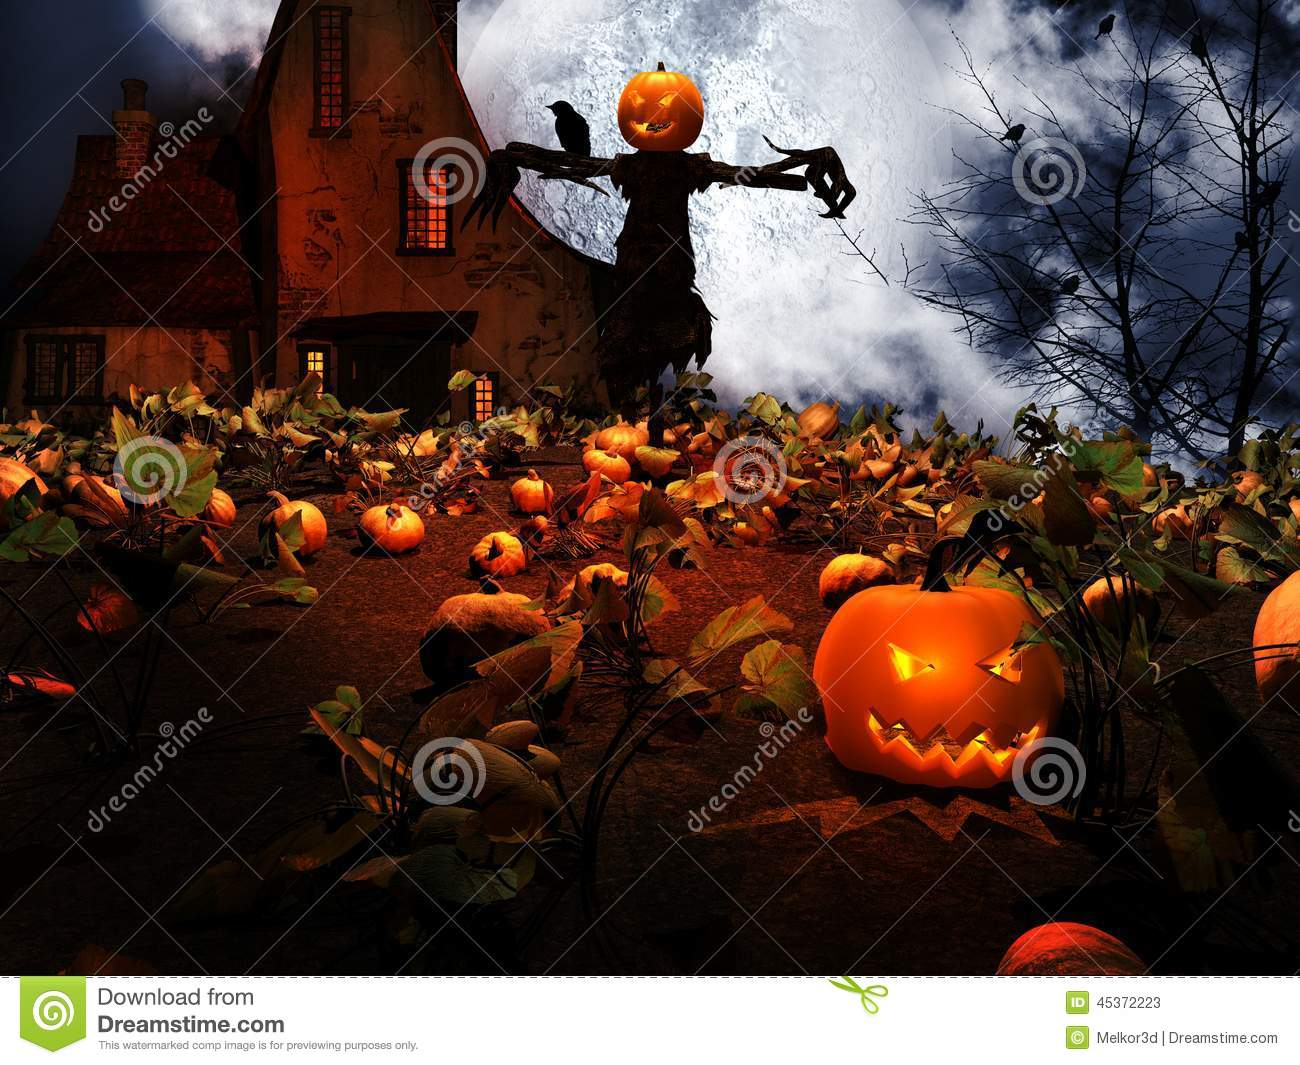 Scarecrow in the field of pumpkins